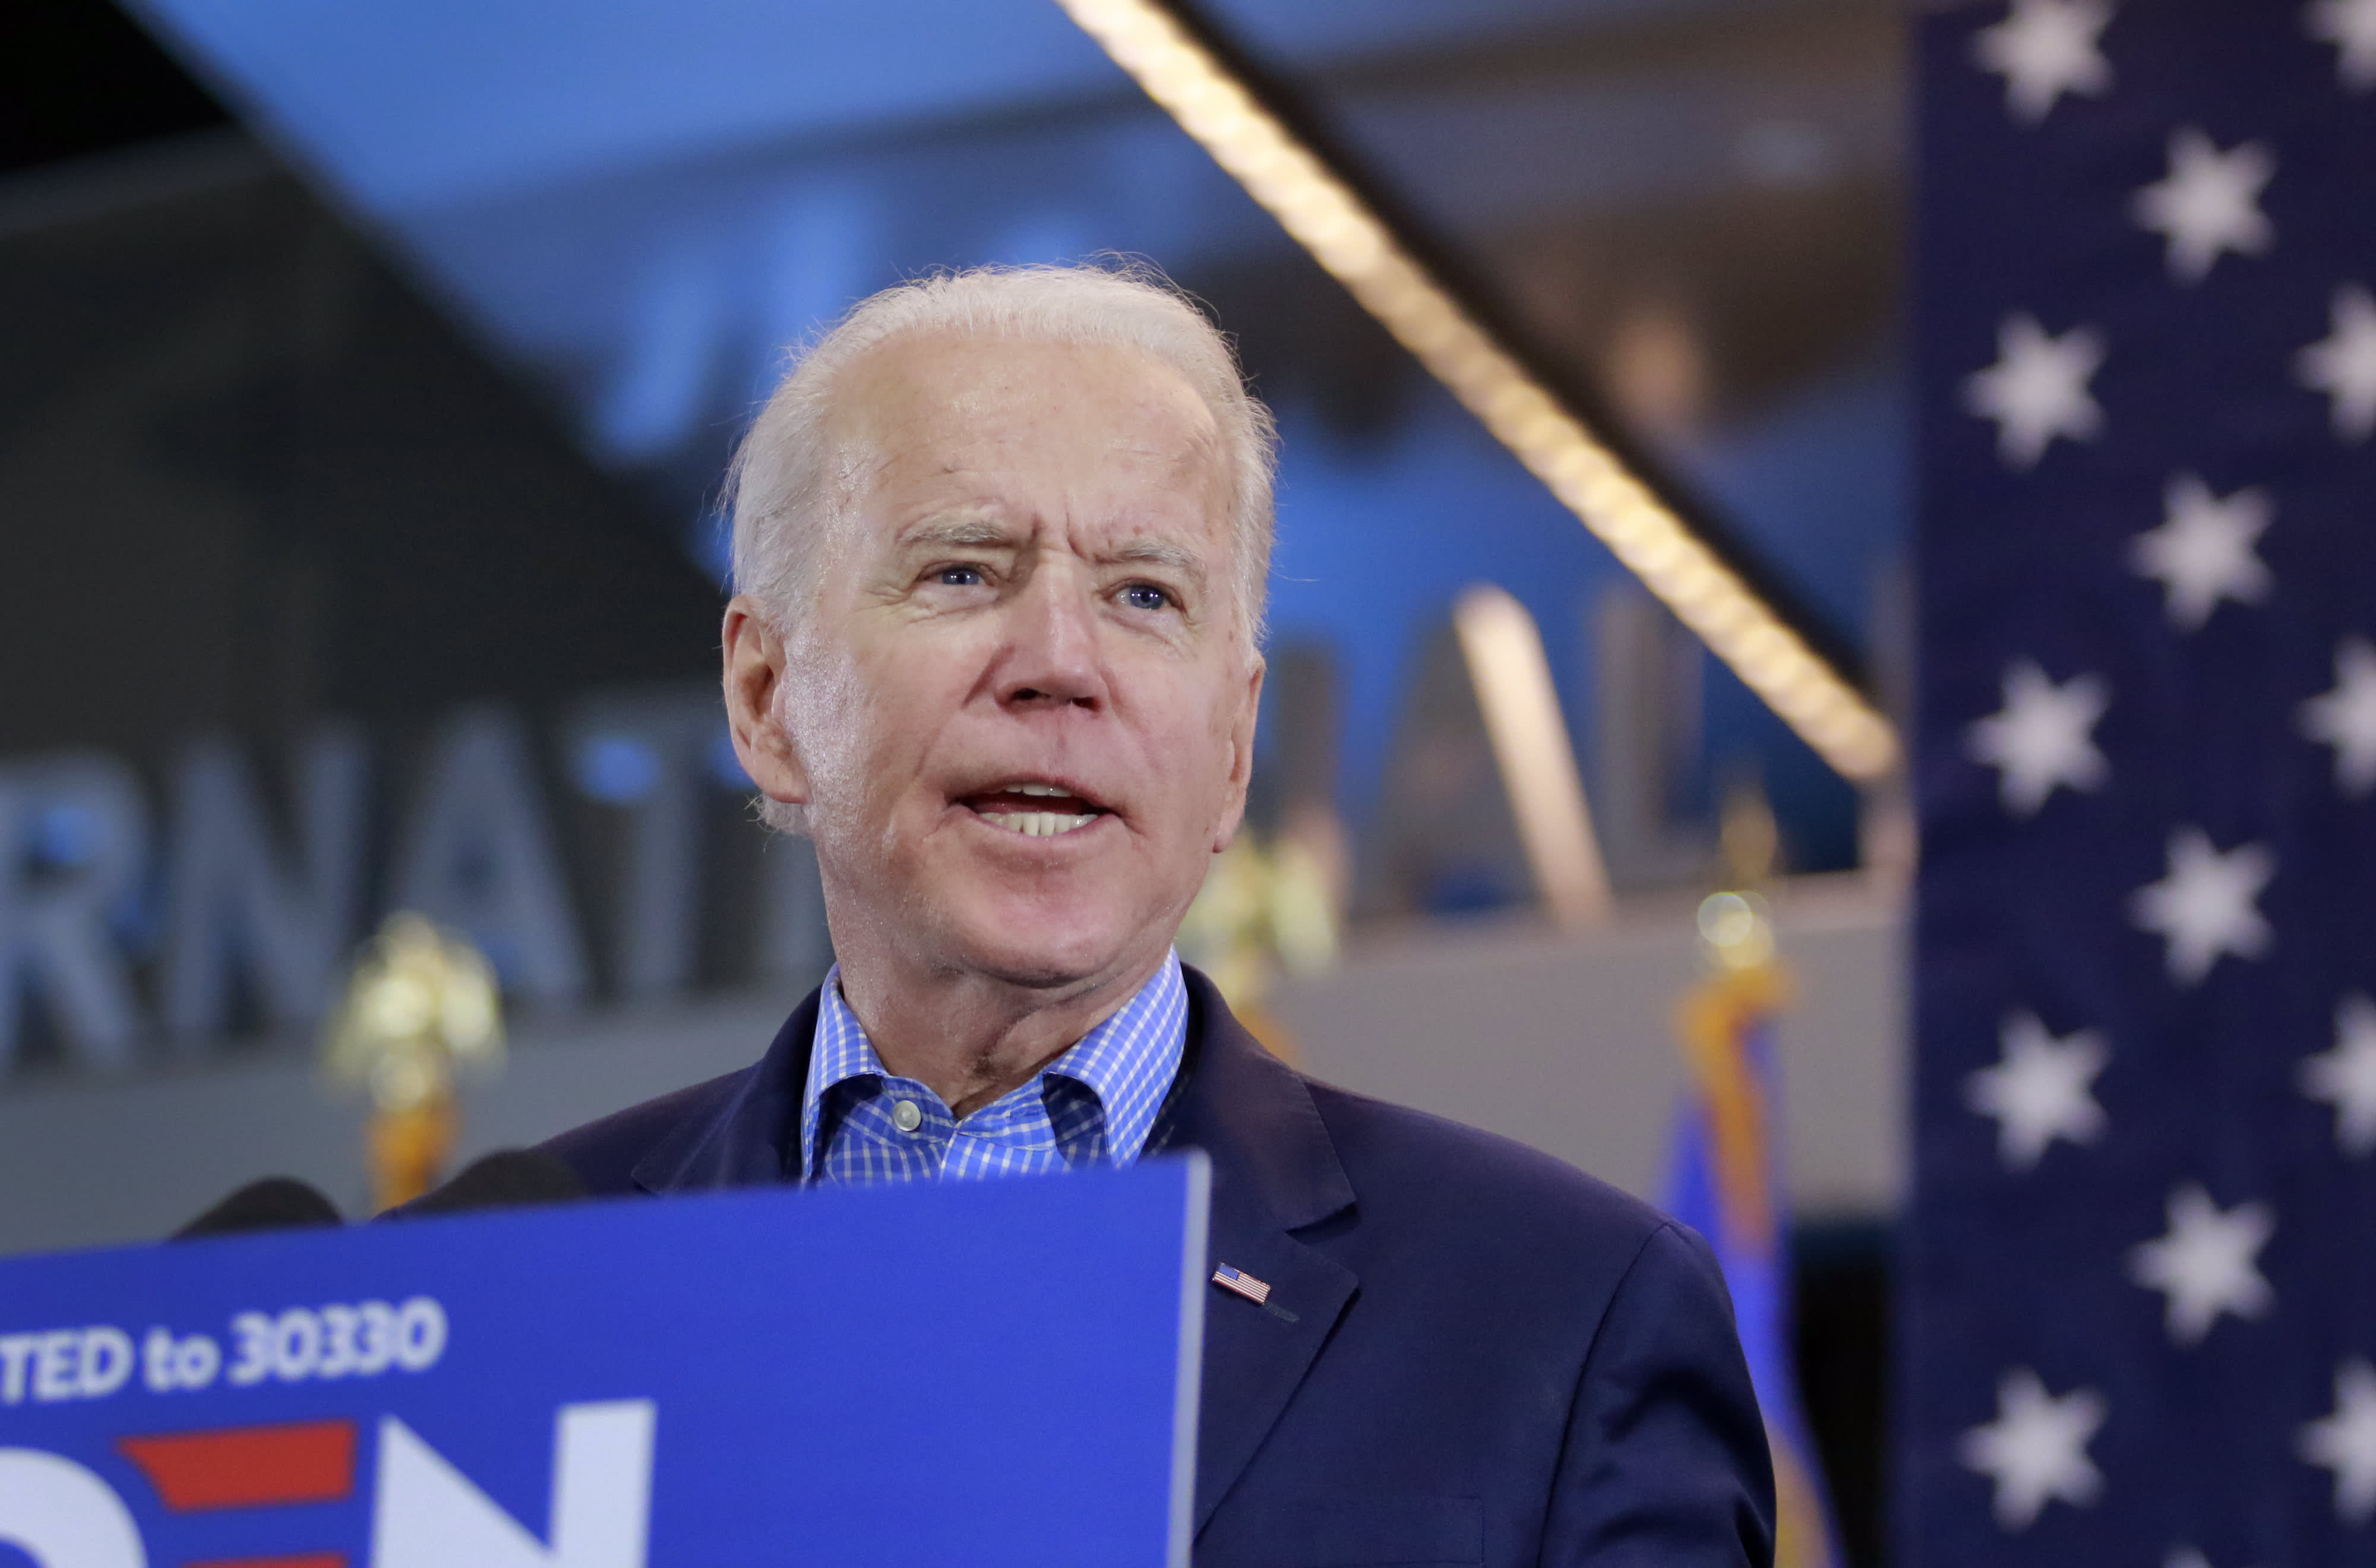 Pro-Biden super PAC plans Super Tuesday investment as former vice president starts a comeback thumbnail